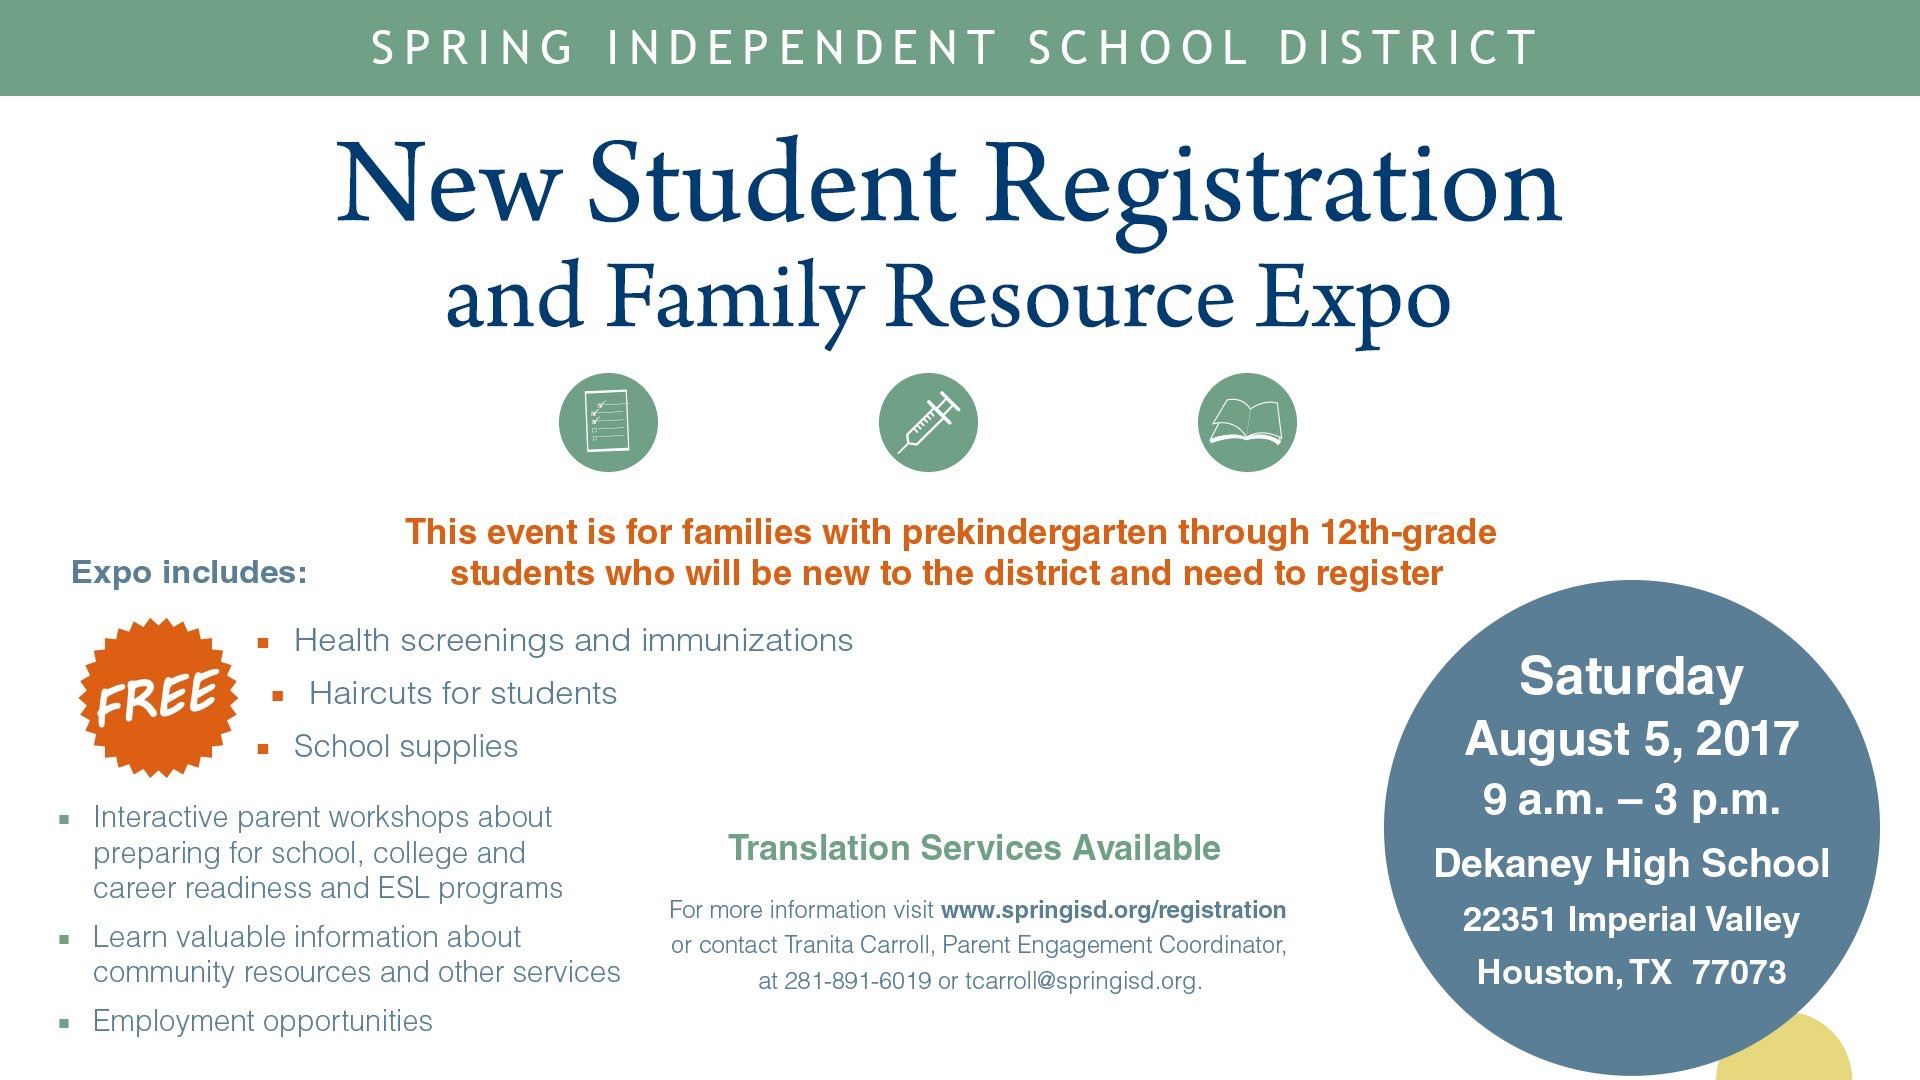 Spring ISD New Student Registration and Family Expo